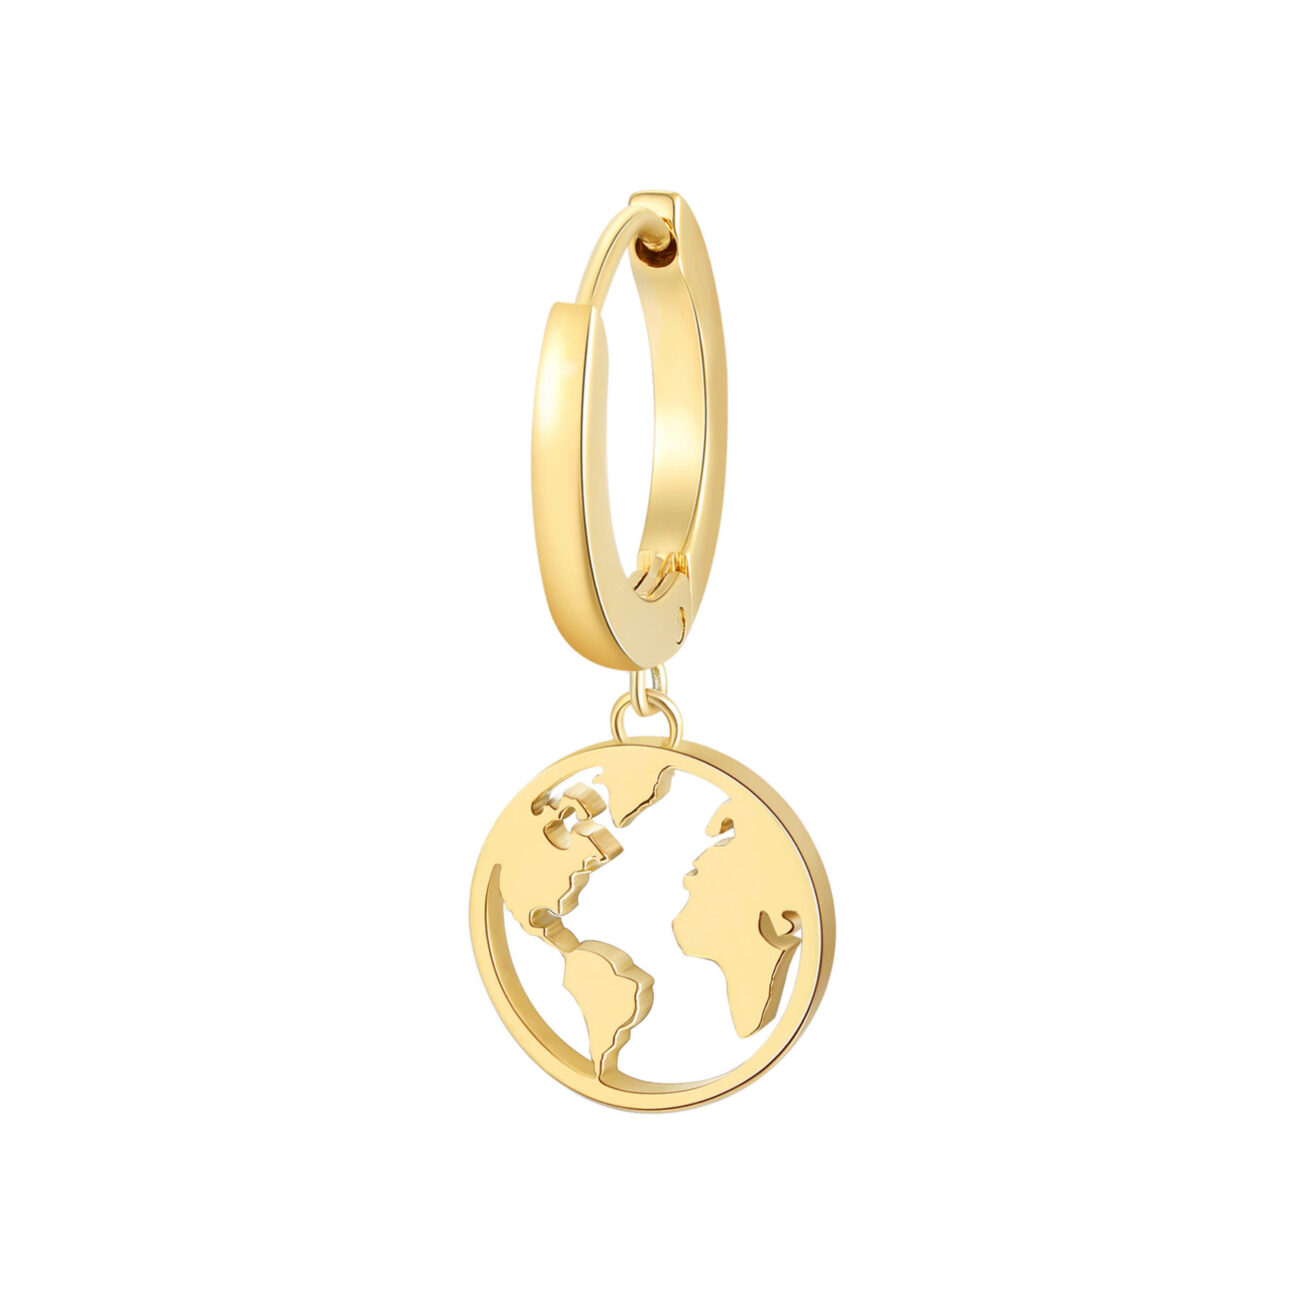 Single earring in 316L stainless steel, gold finish with globe-shaped pendant.